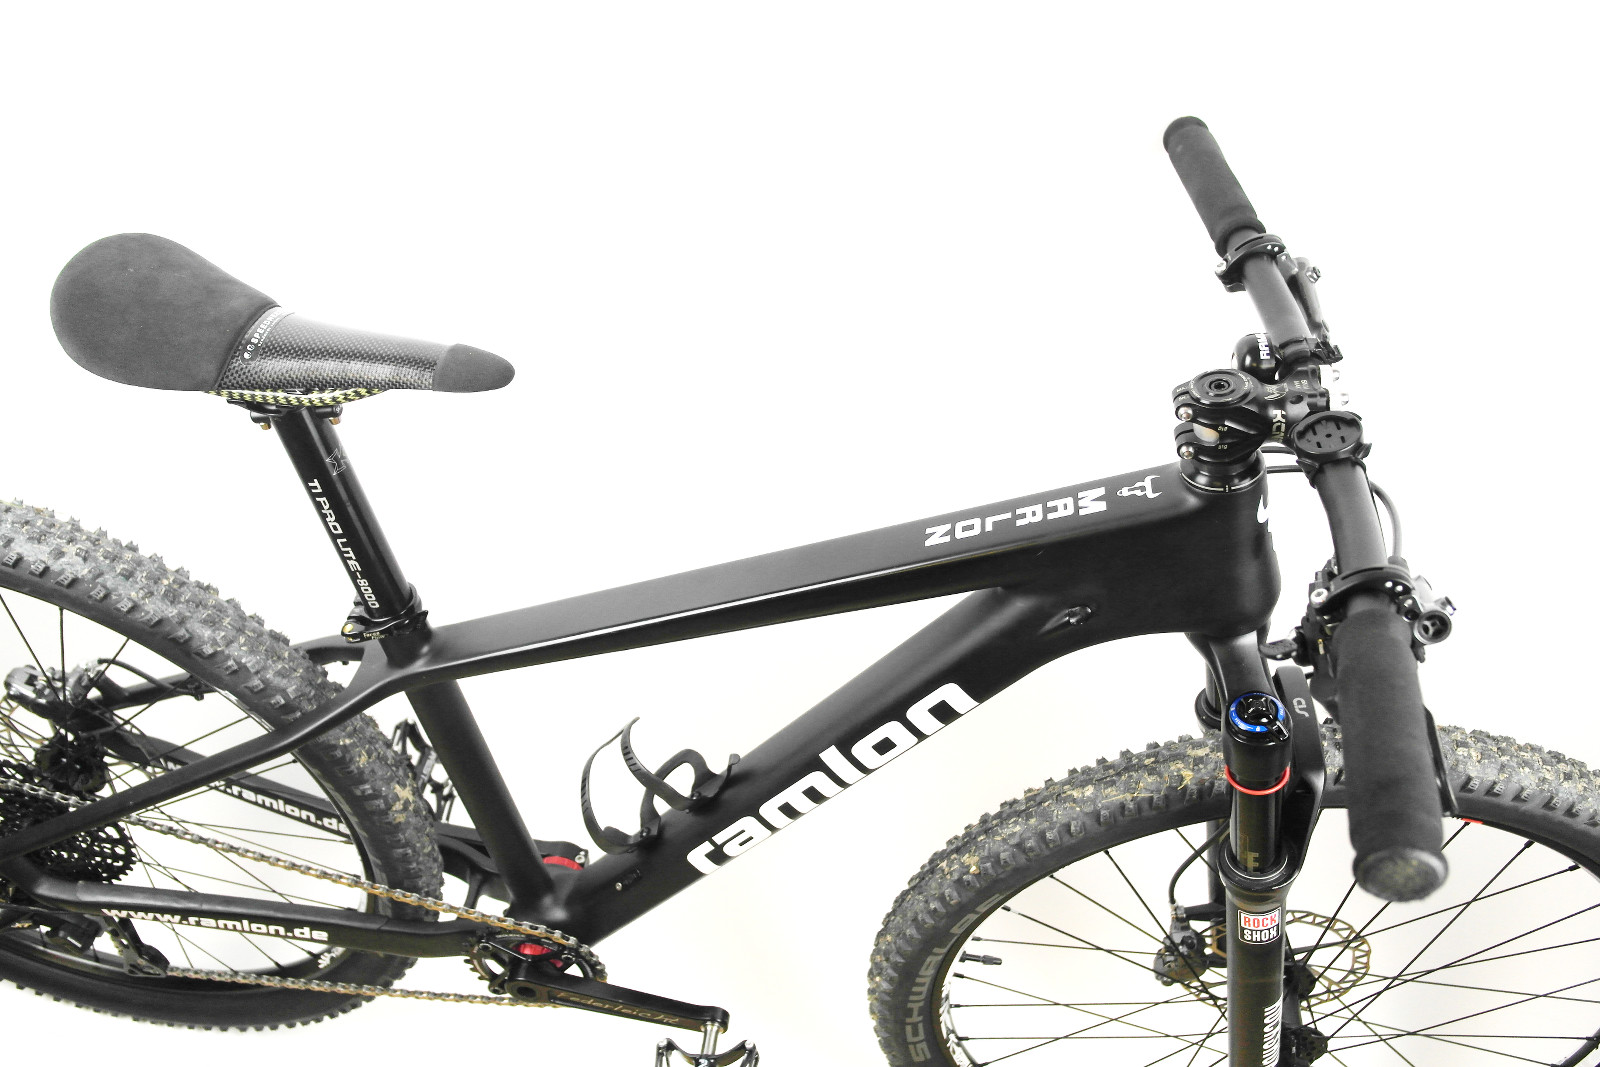 RAMLON IBEX 2015 Kinder Mountainbike